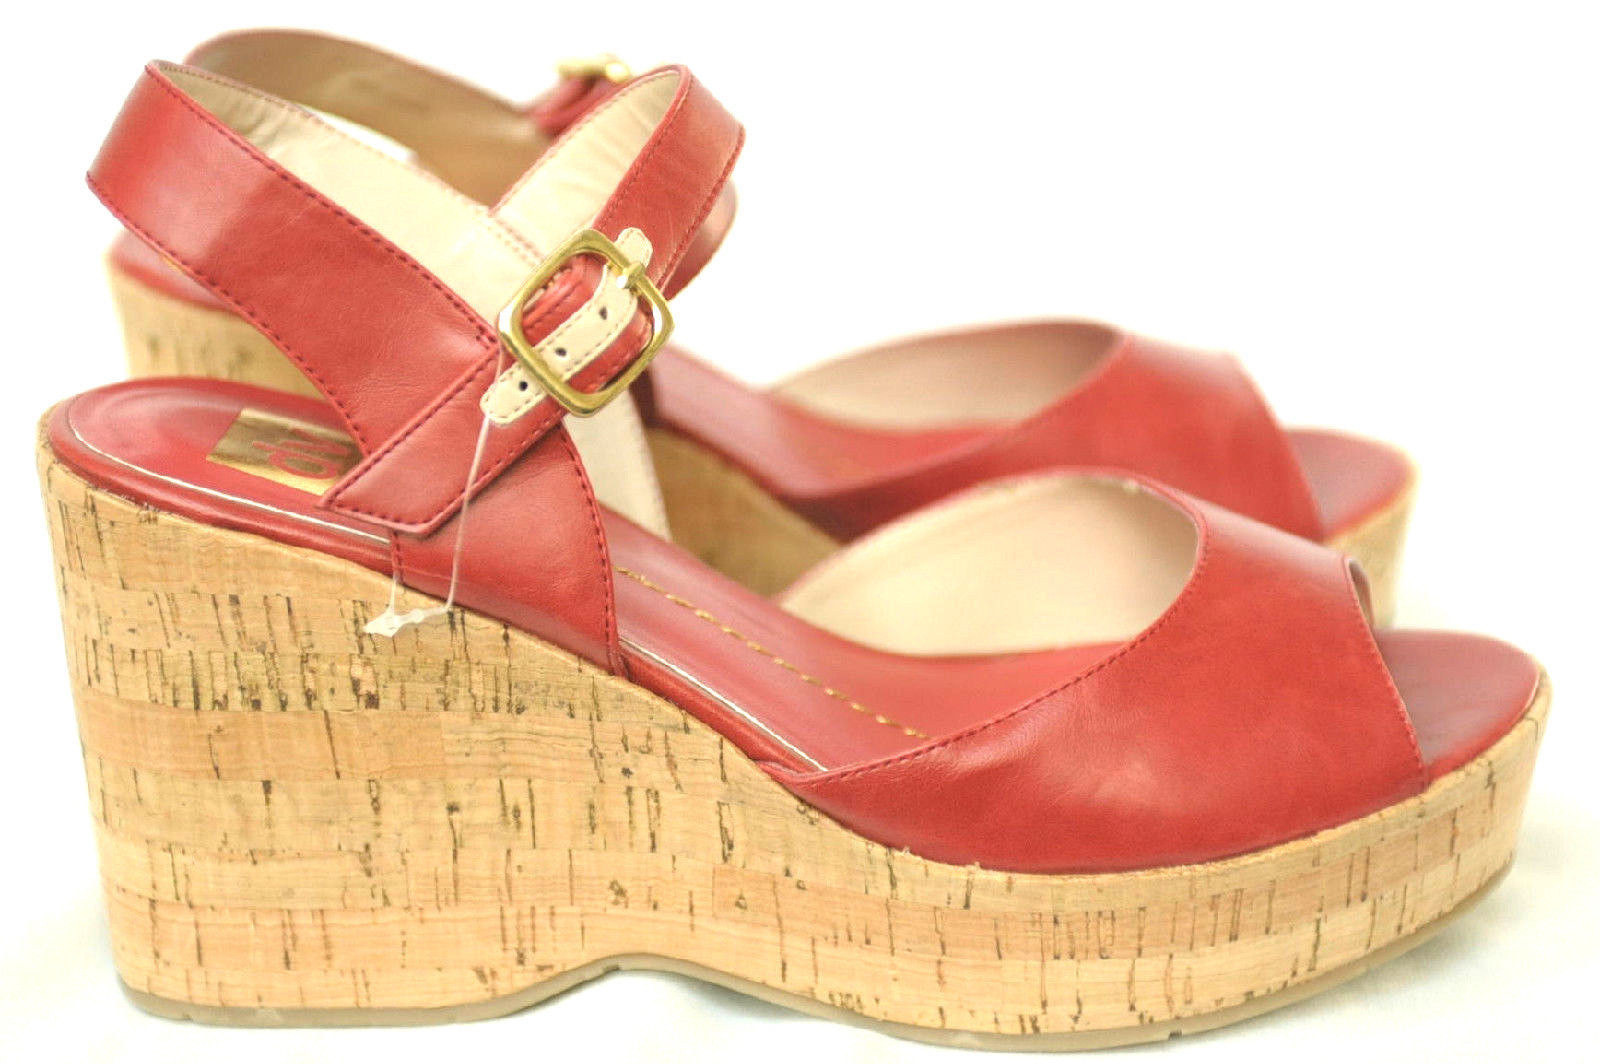 812d1d7da09 NEW Dolce Vita DV Red Cork Wedge Heel and 36 similar items. S l1600